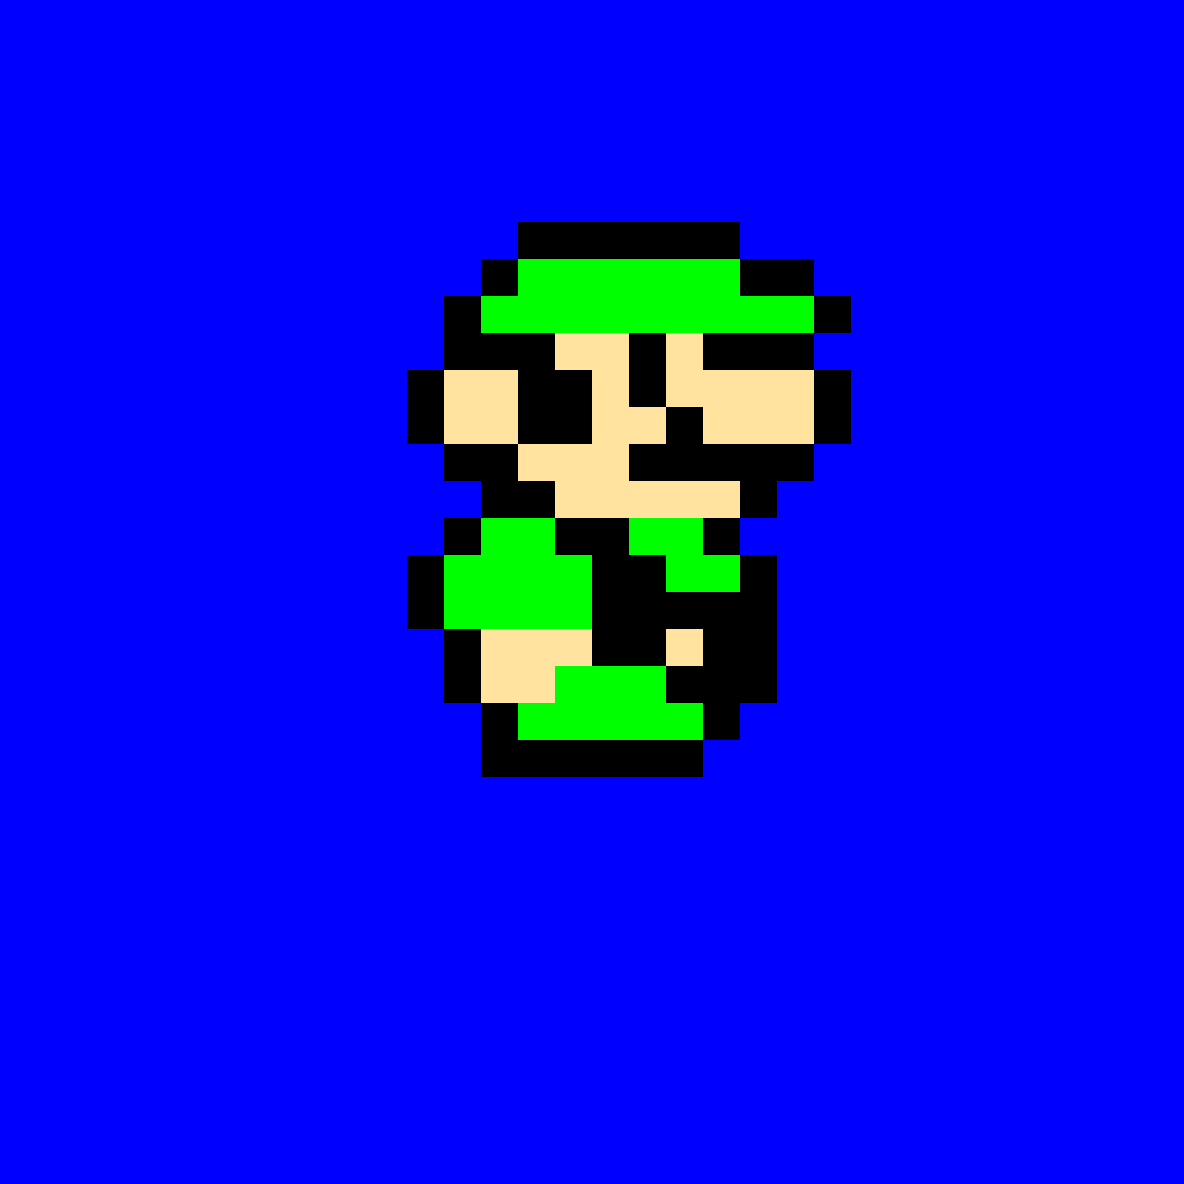 super mario bros 3 luigi pixel art